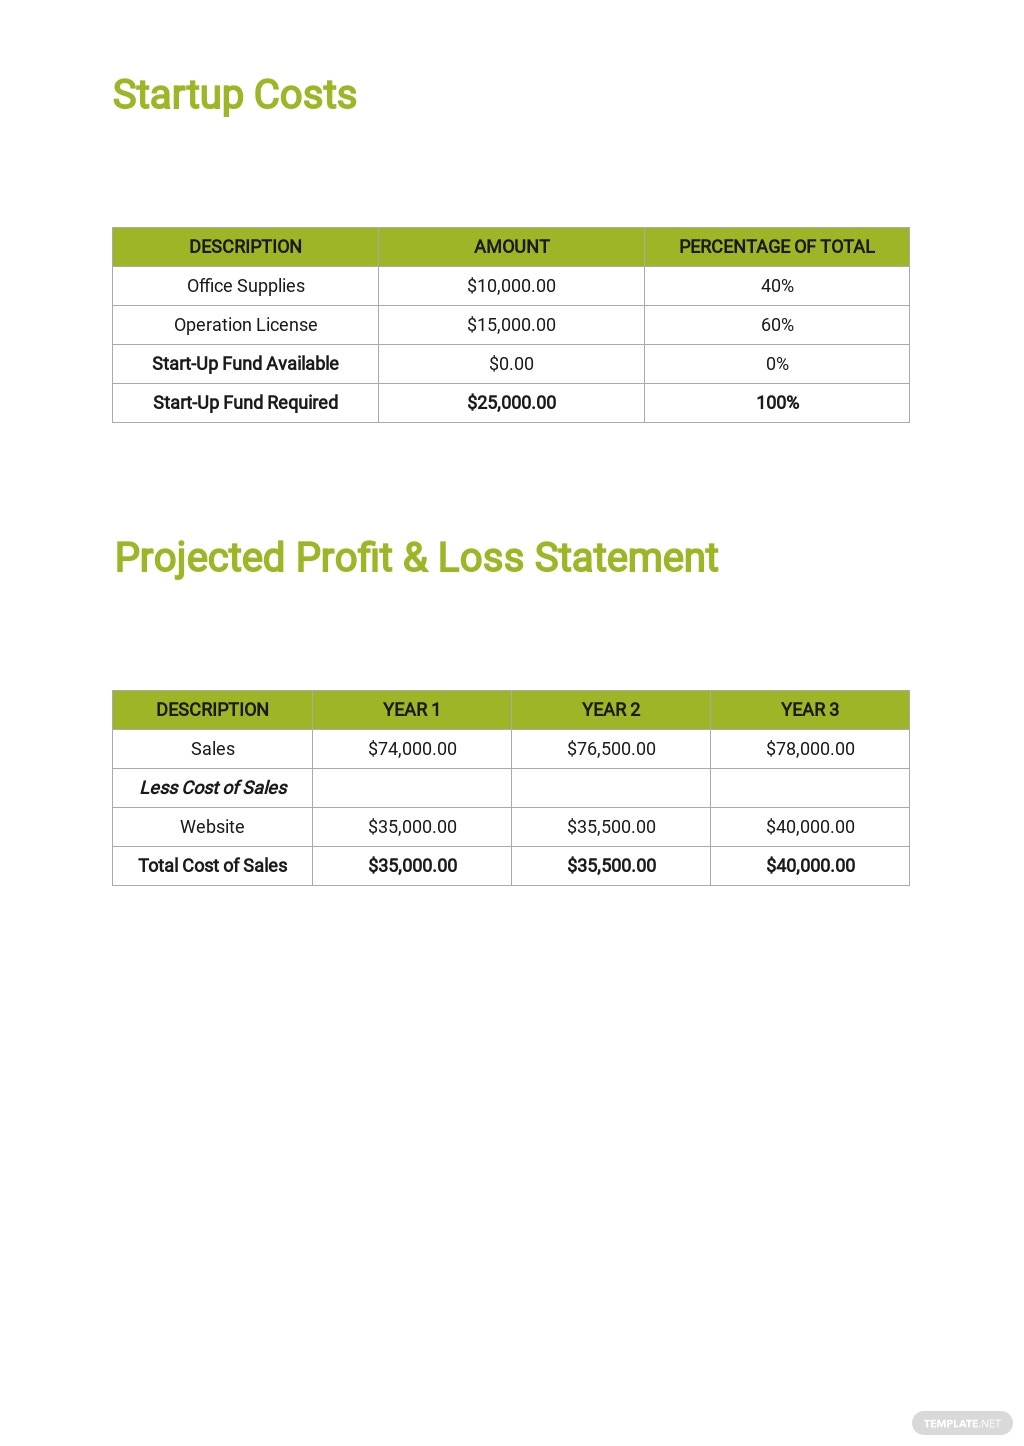 Investment Company Business Plan Template 6.jpe